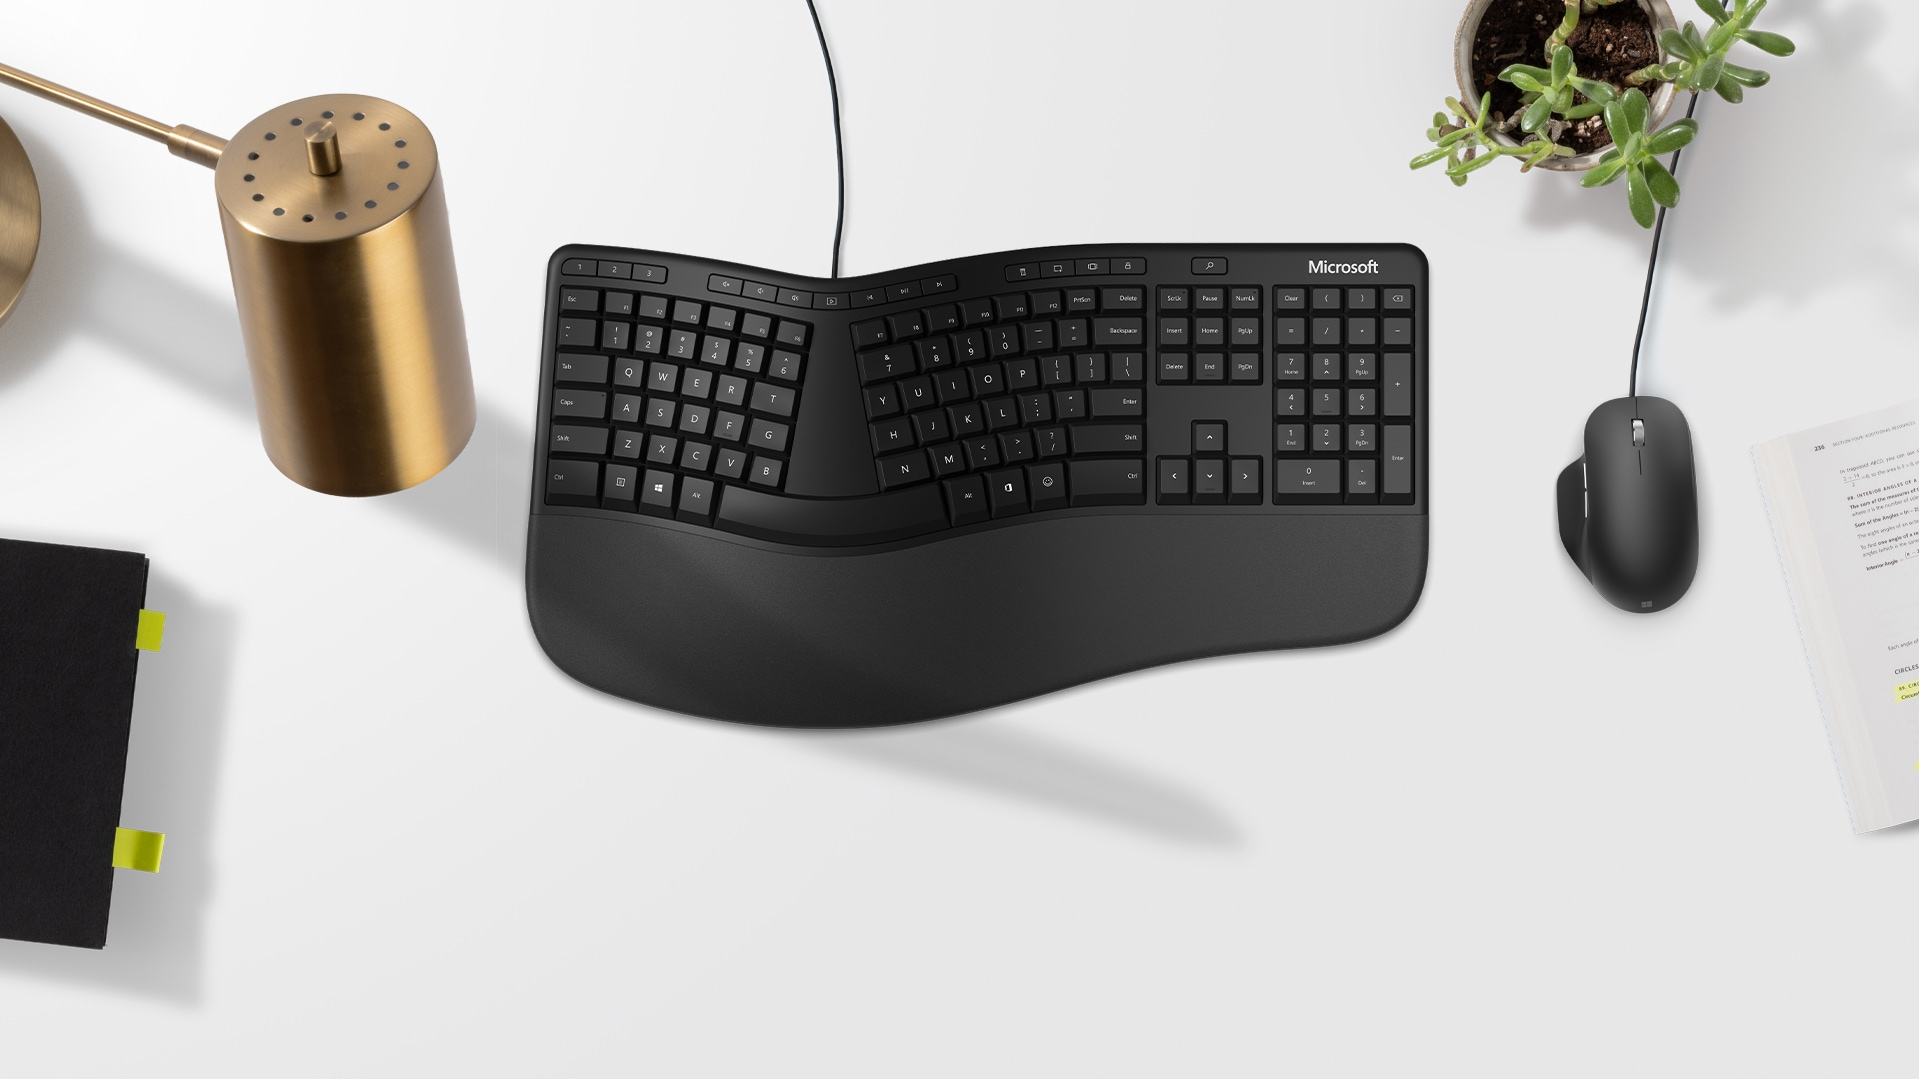 Microsoft Ergonomic Keyboard and Precision Mouse sit on a desk.